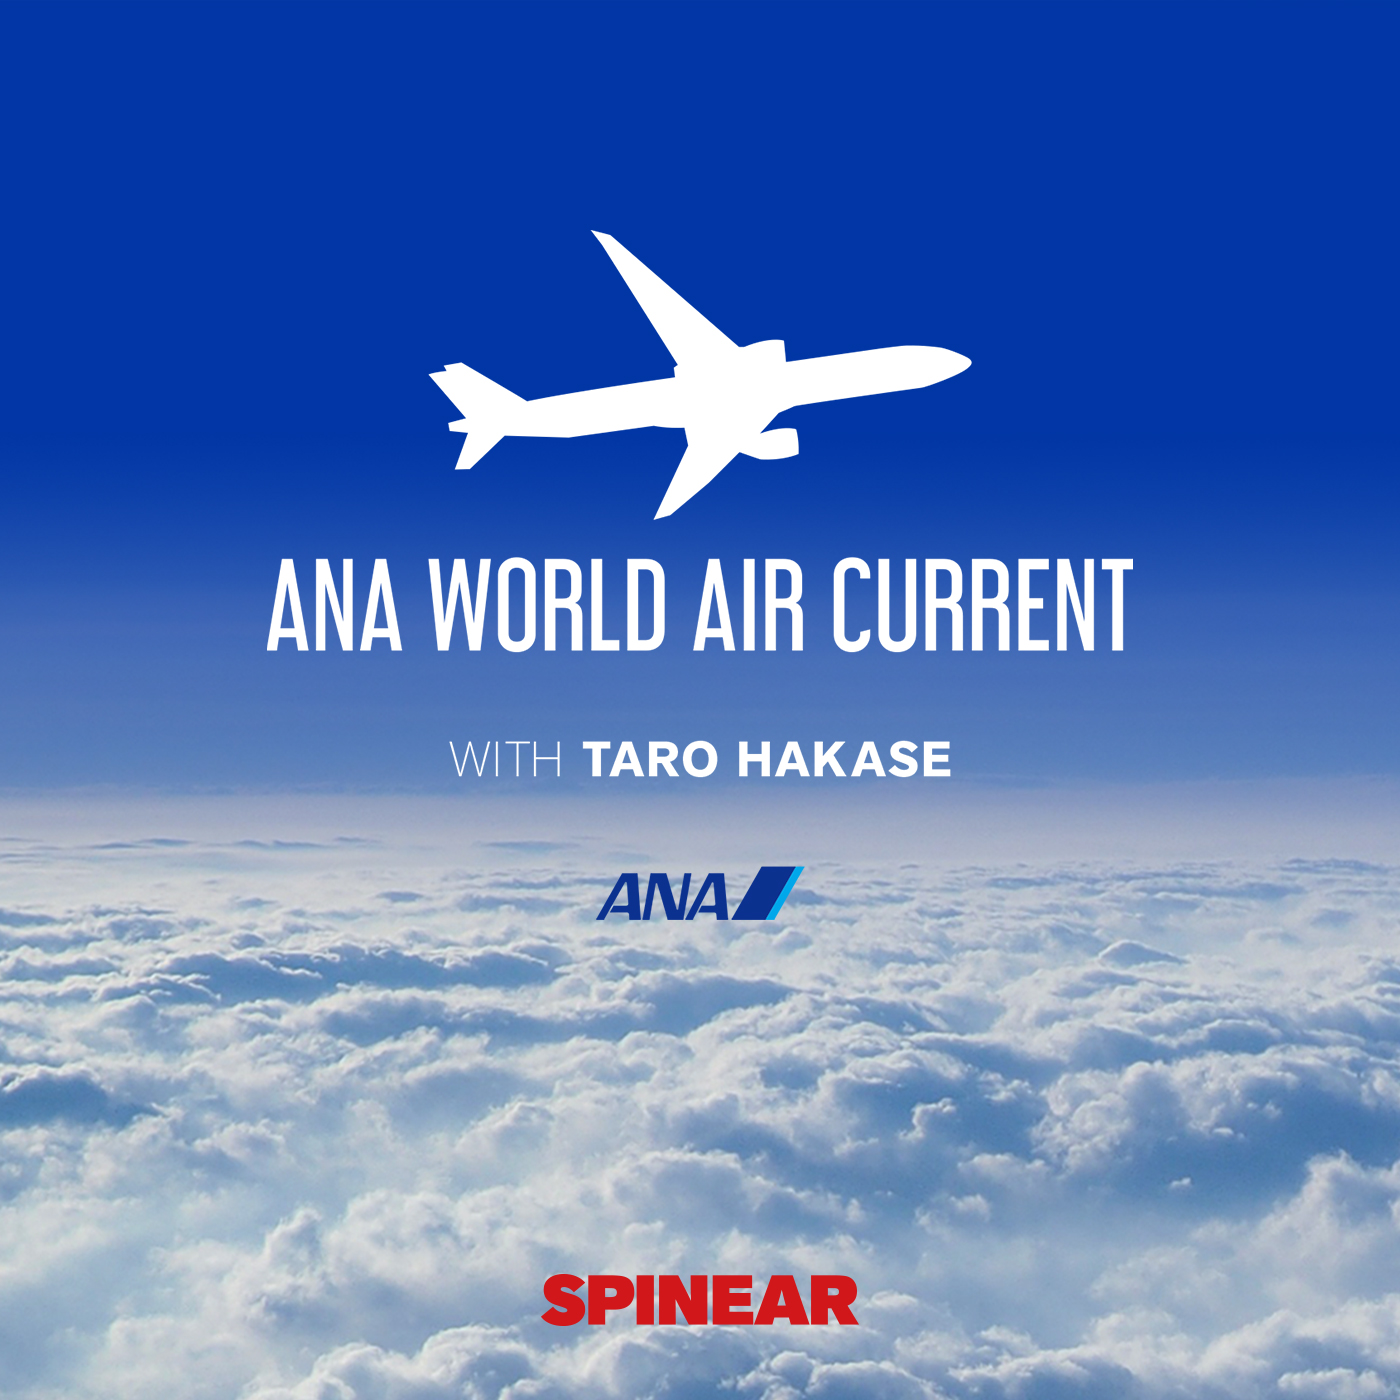 2020.10.10 森山未来 - ANA WORLD AIR CURRENT